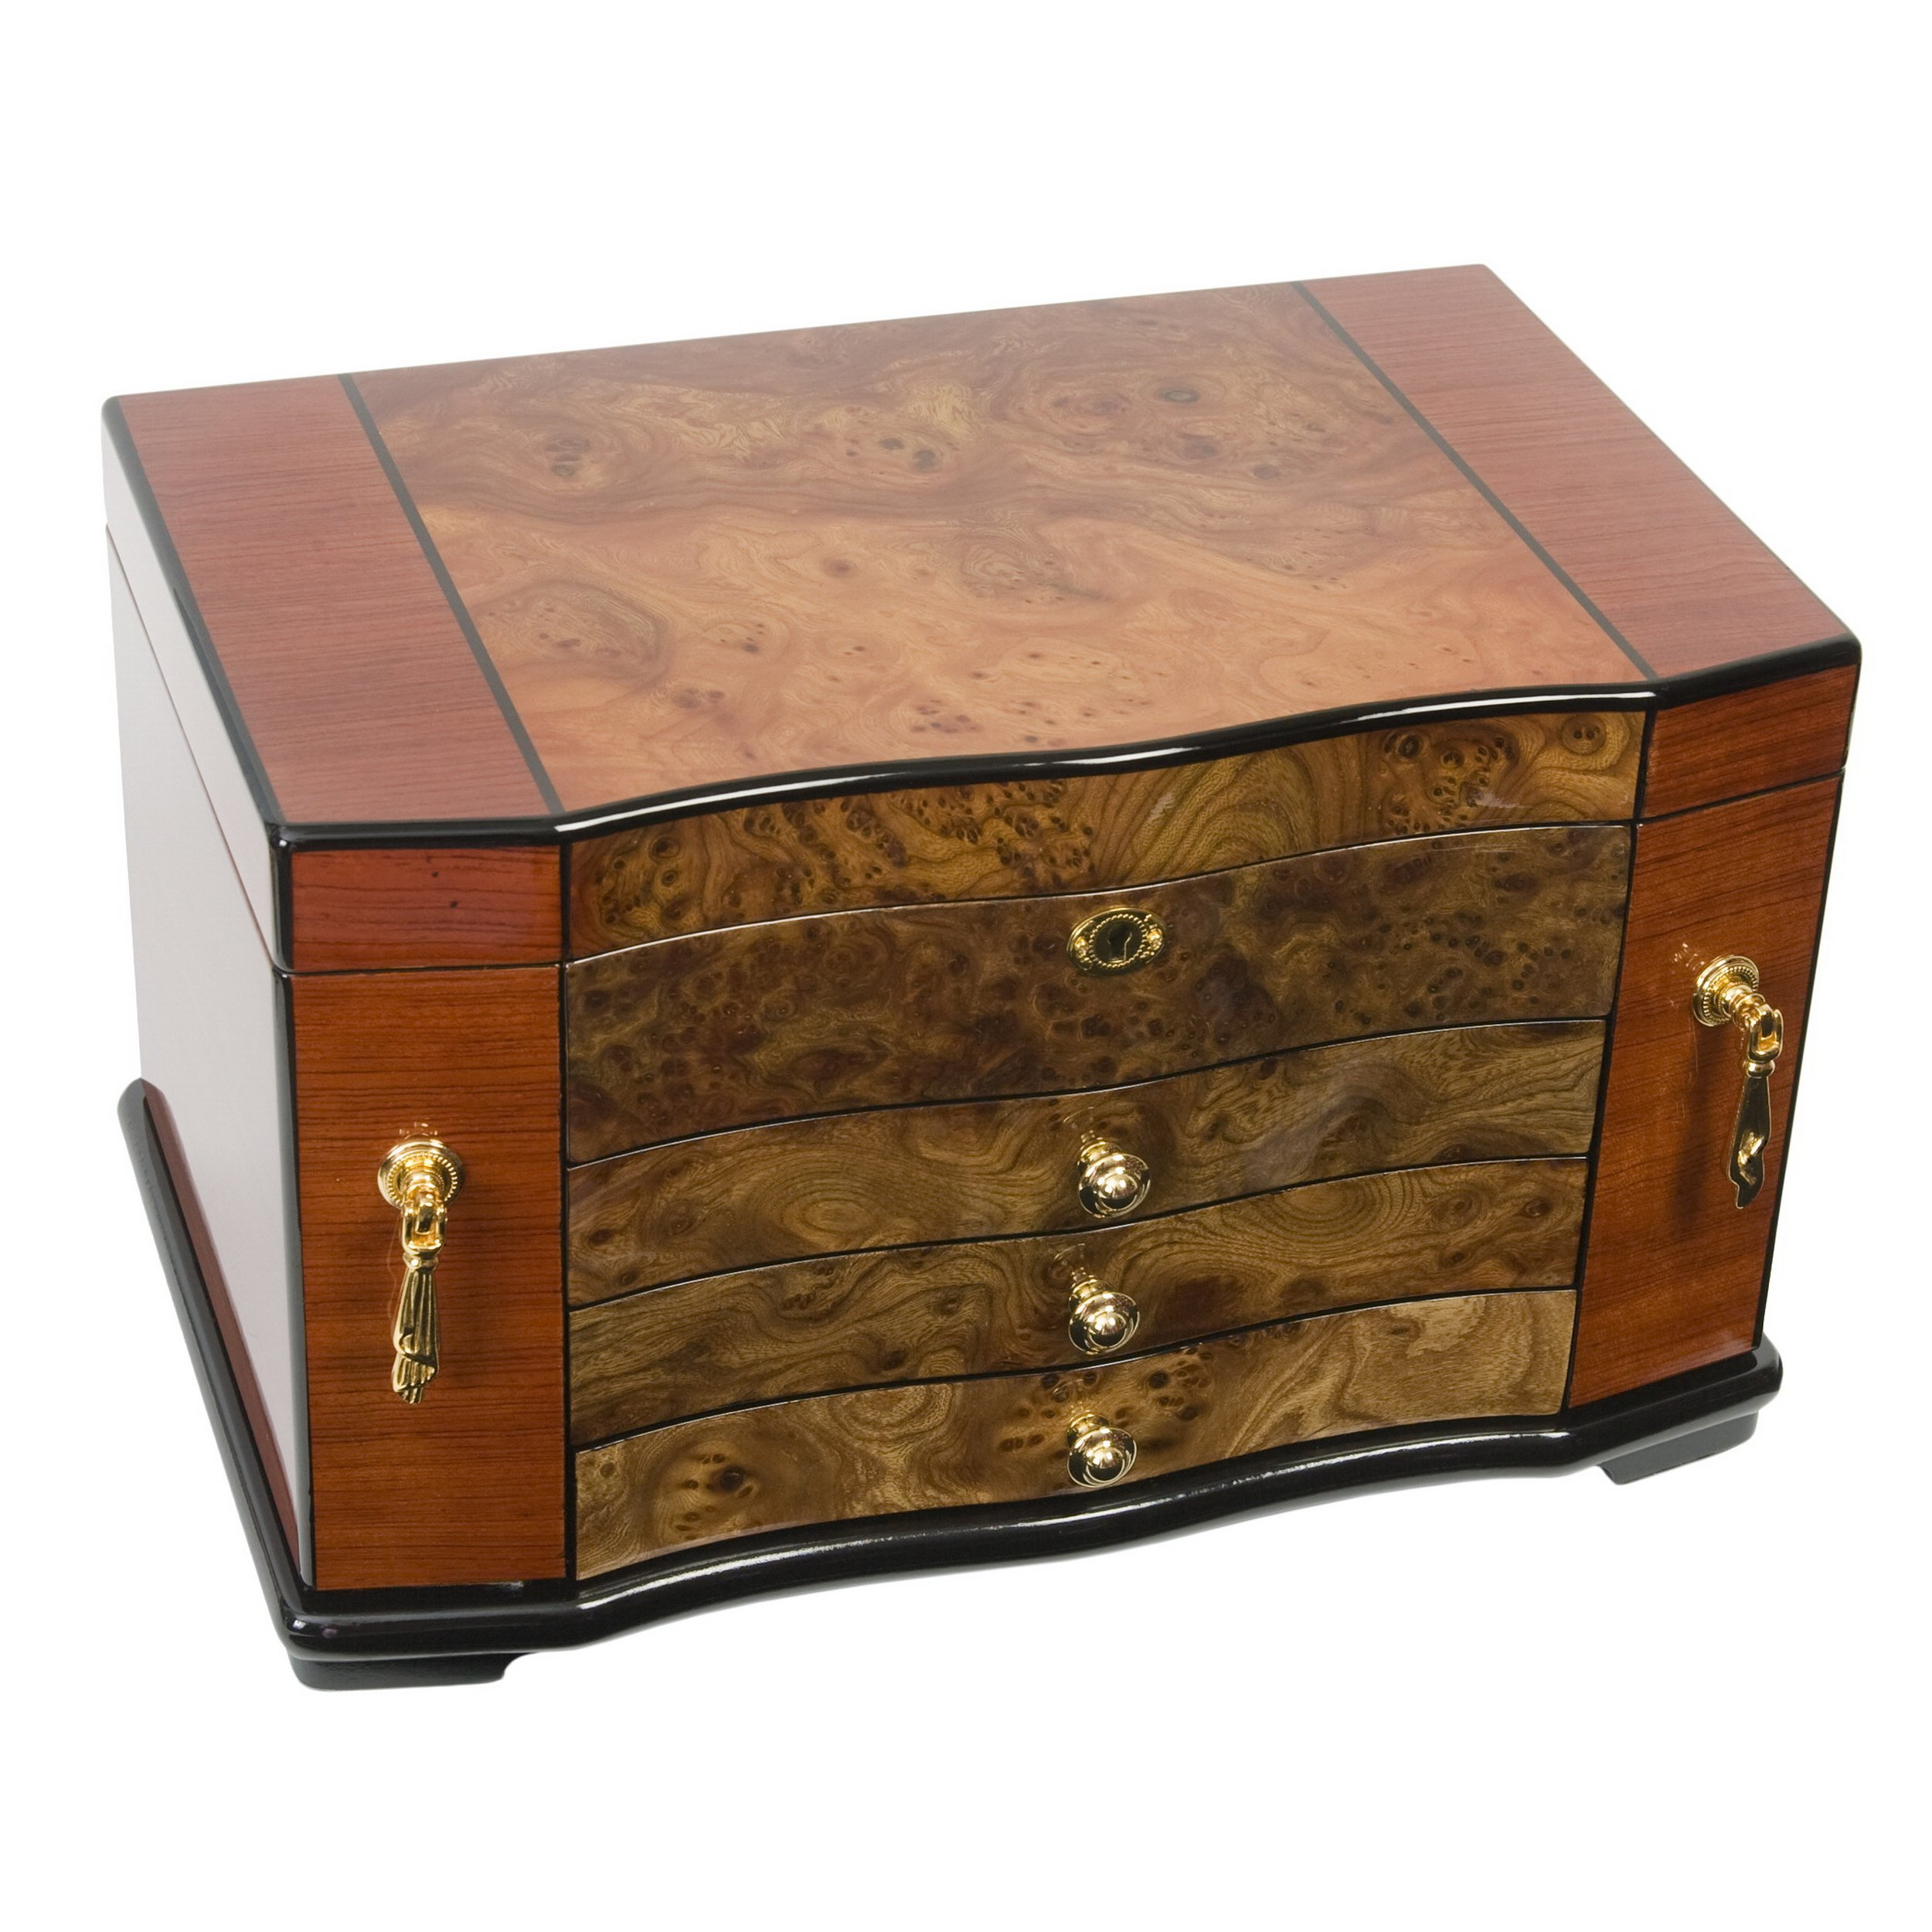 Fully Locking Jewelry Box in African Bubing with Italian Elm Burl Wood Inlay.